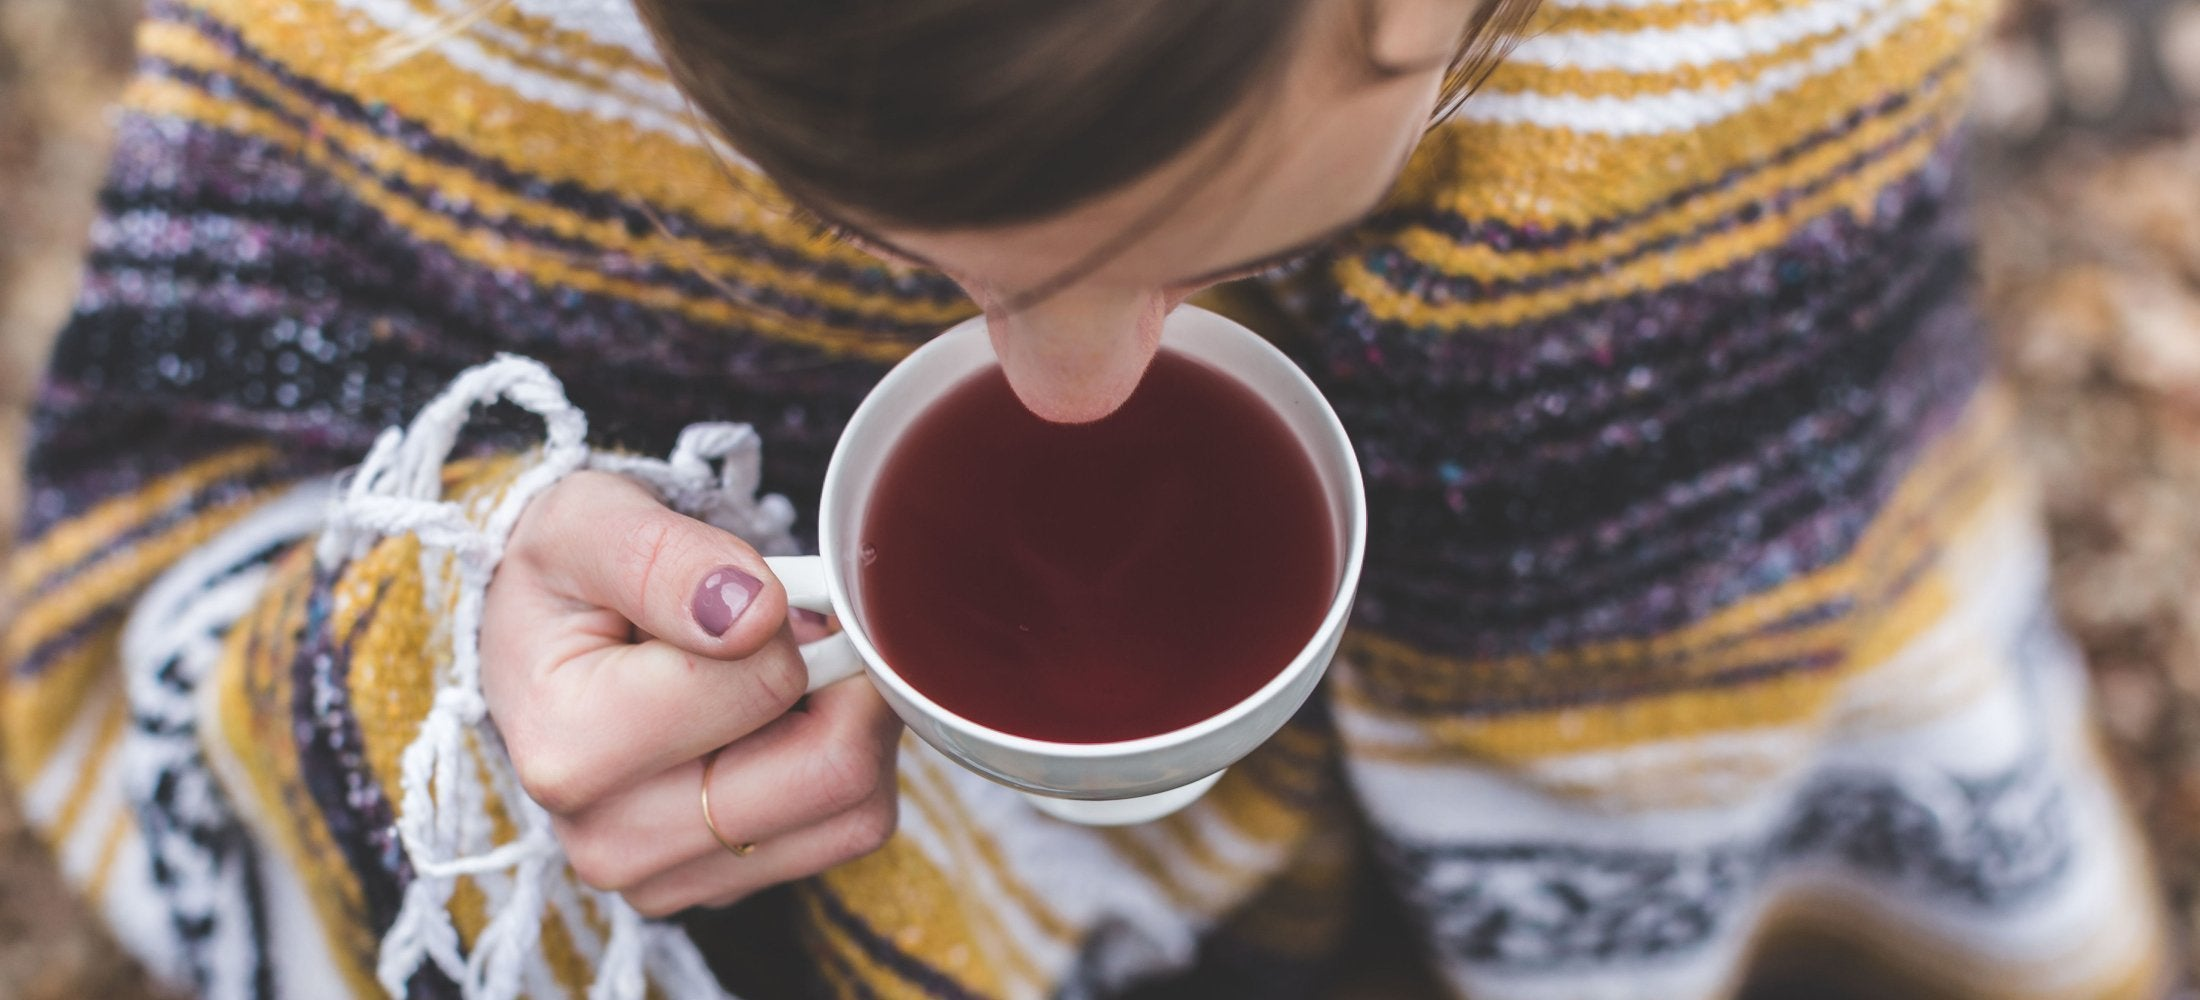 25 Health Benefits That Come With Drinking Tea